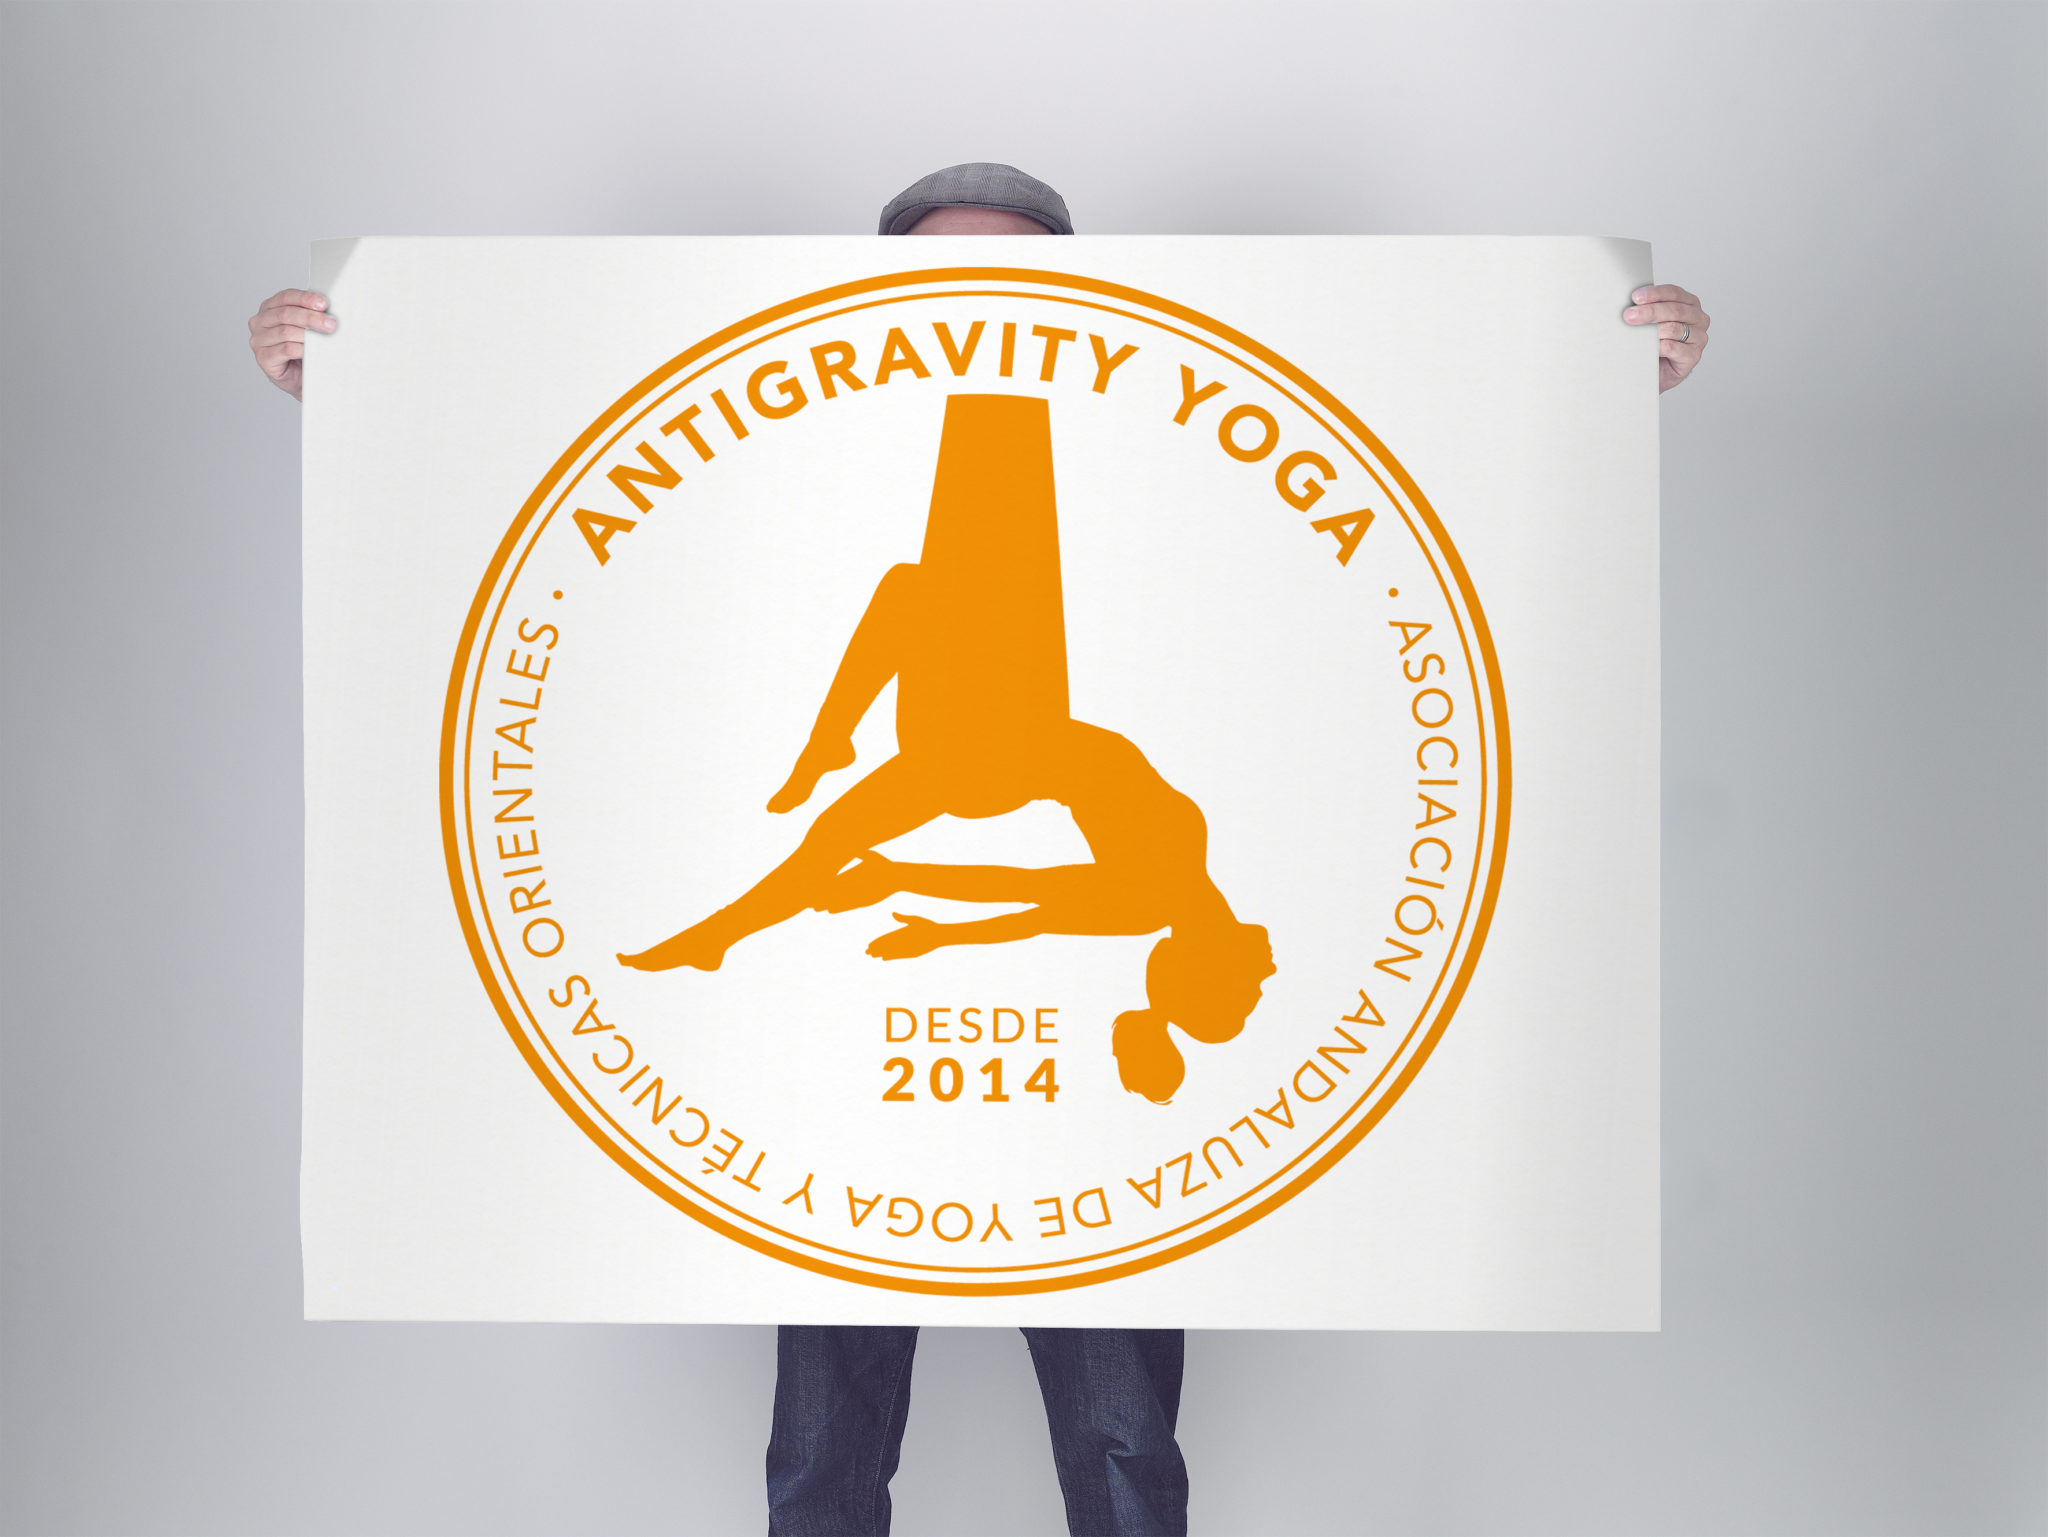 Logotipo Antigravity